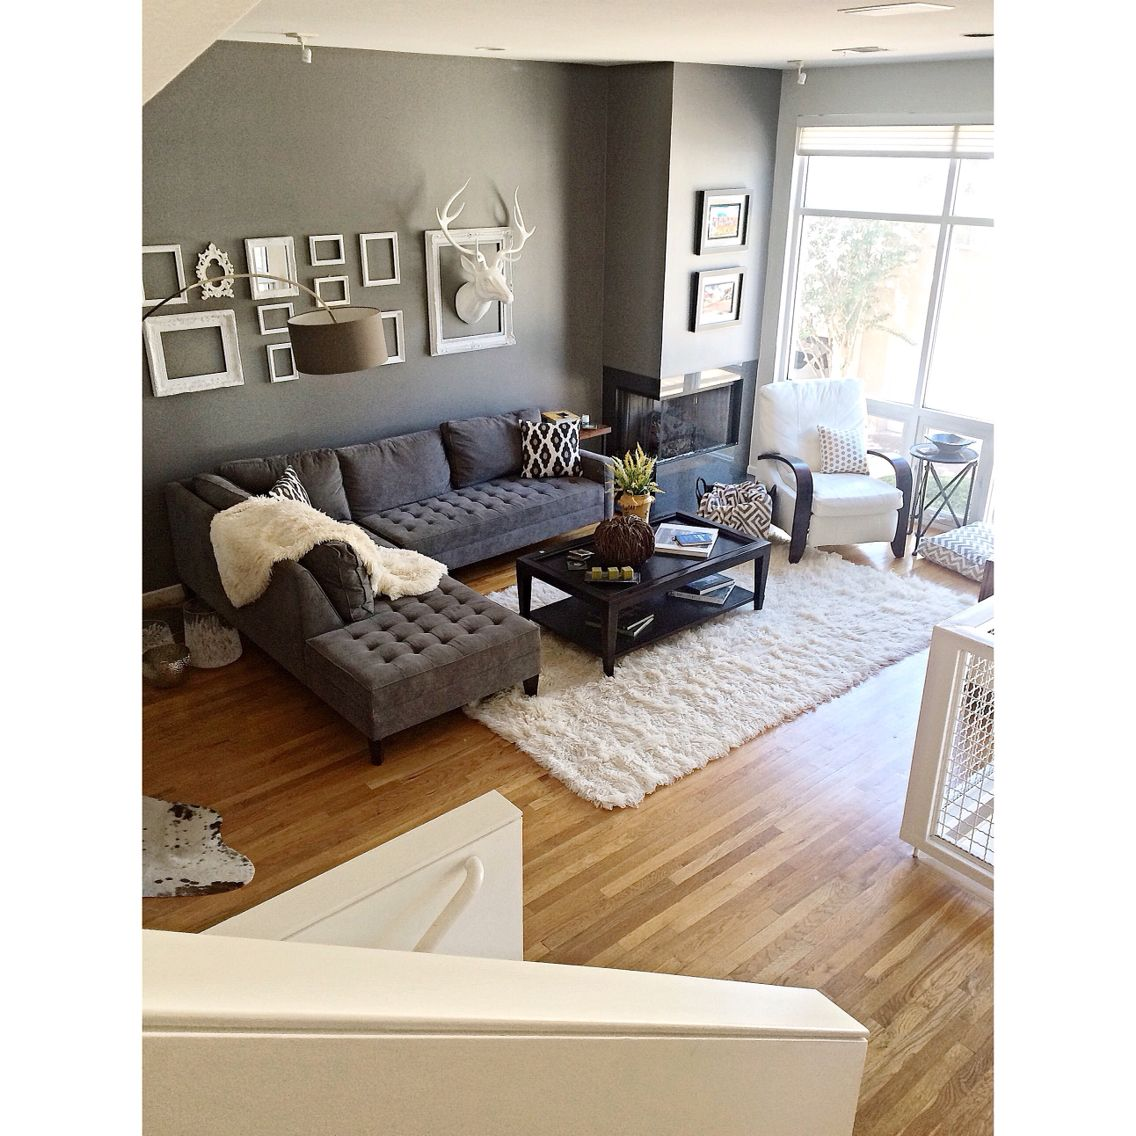 My Living Room In My Dallas, Texas Townhouse. Couch, Deer